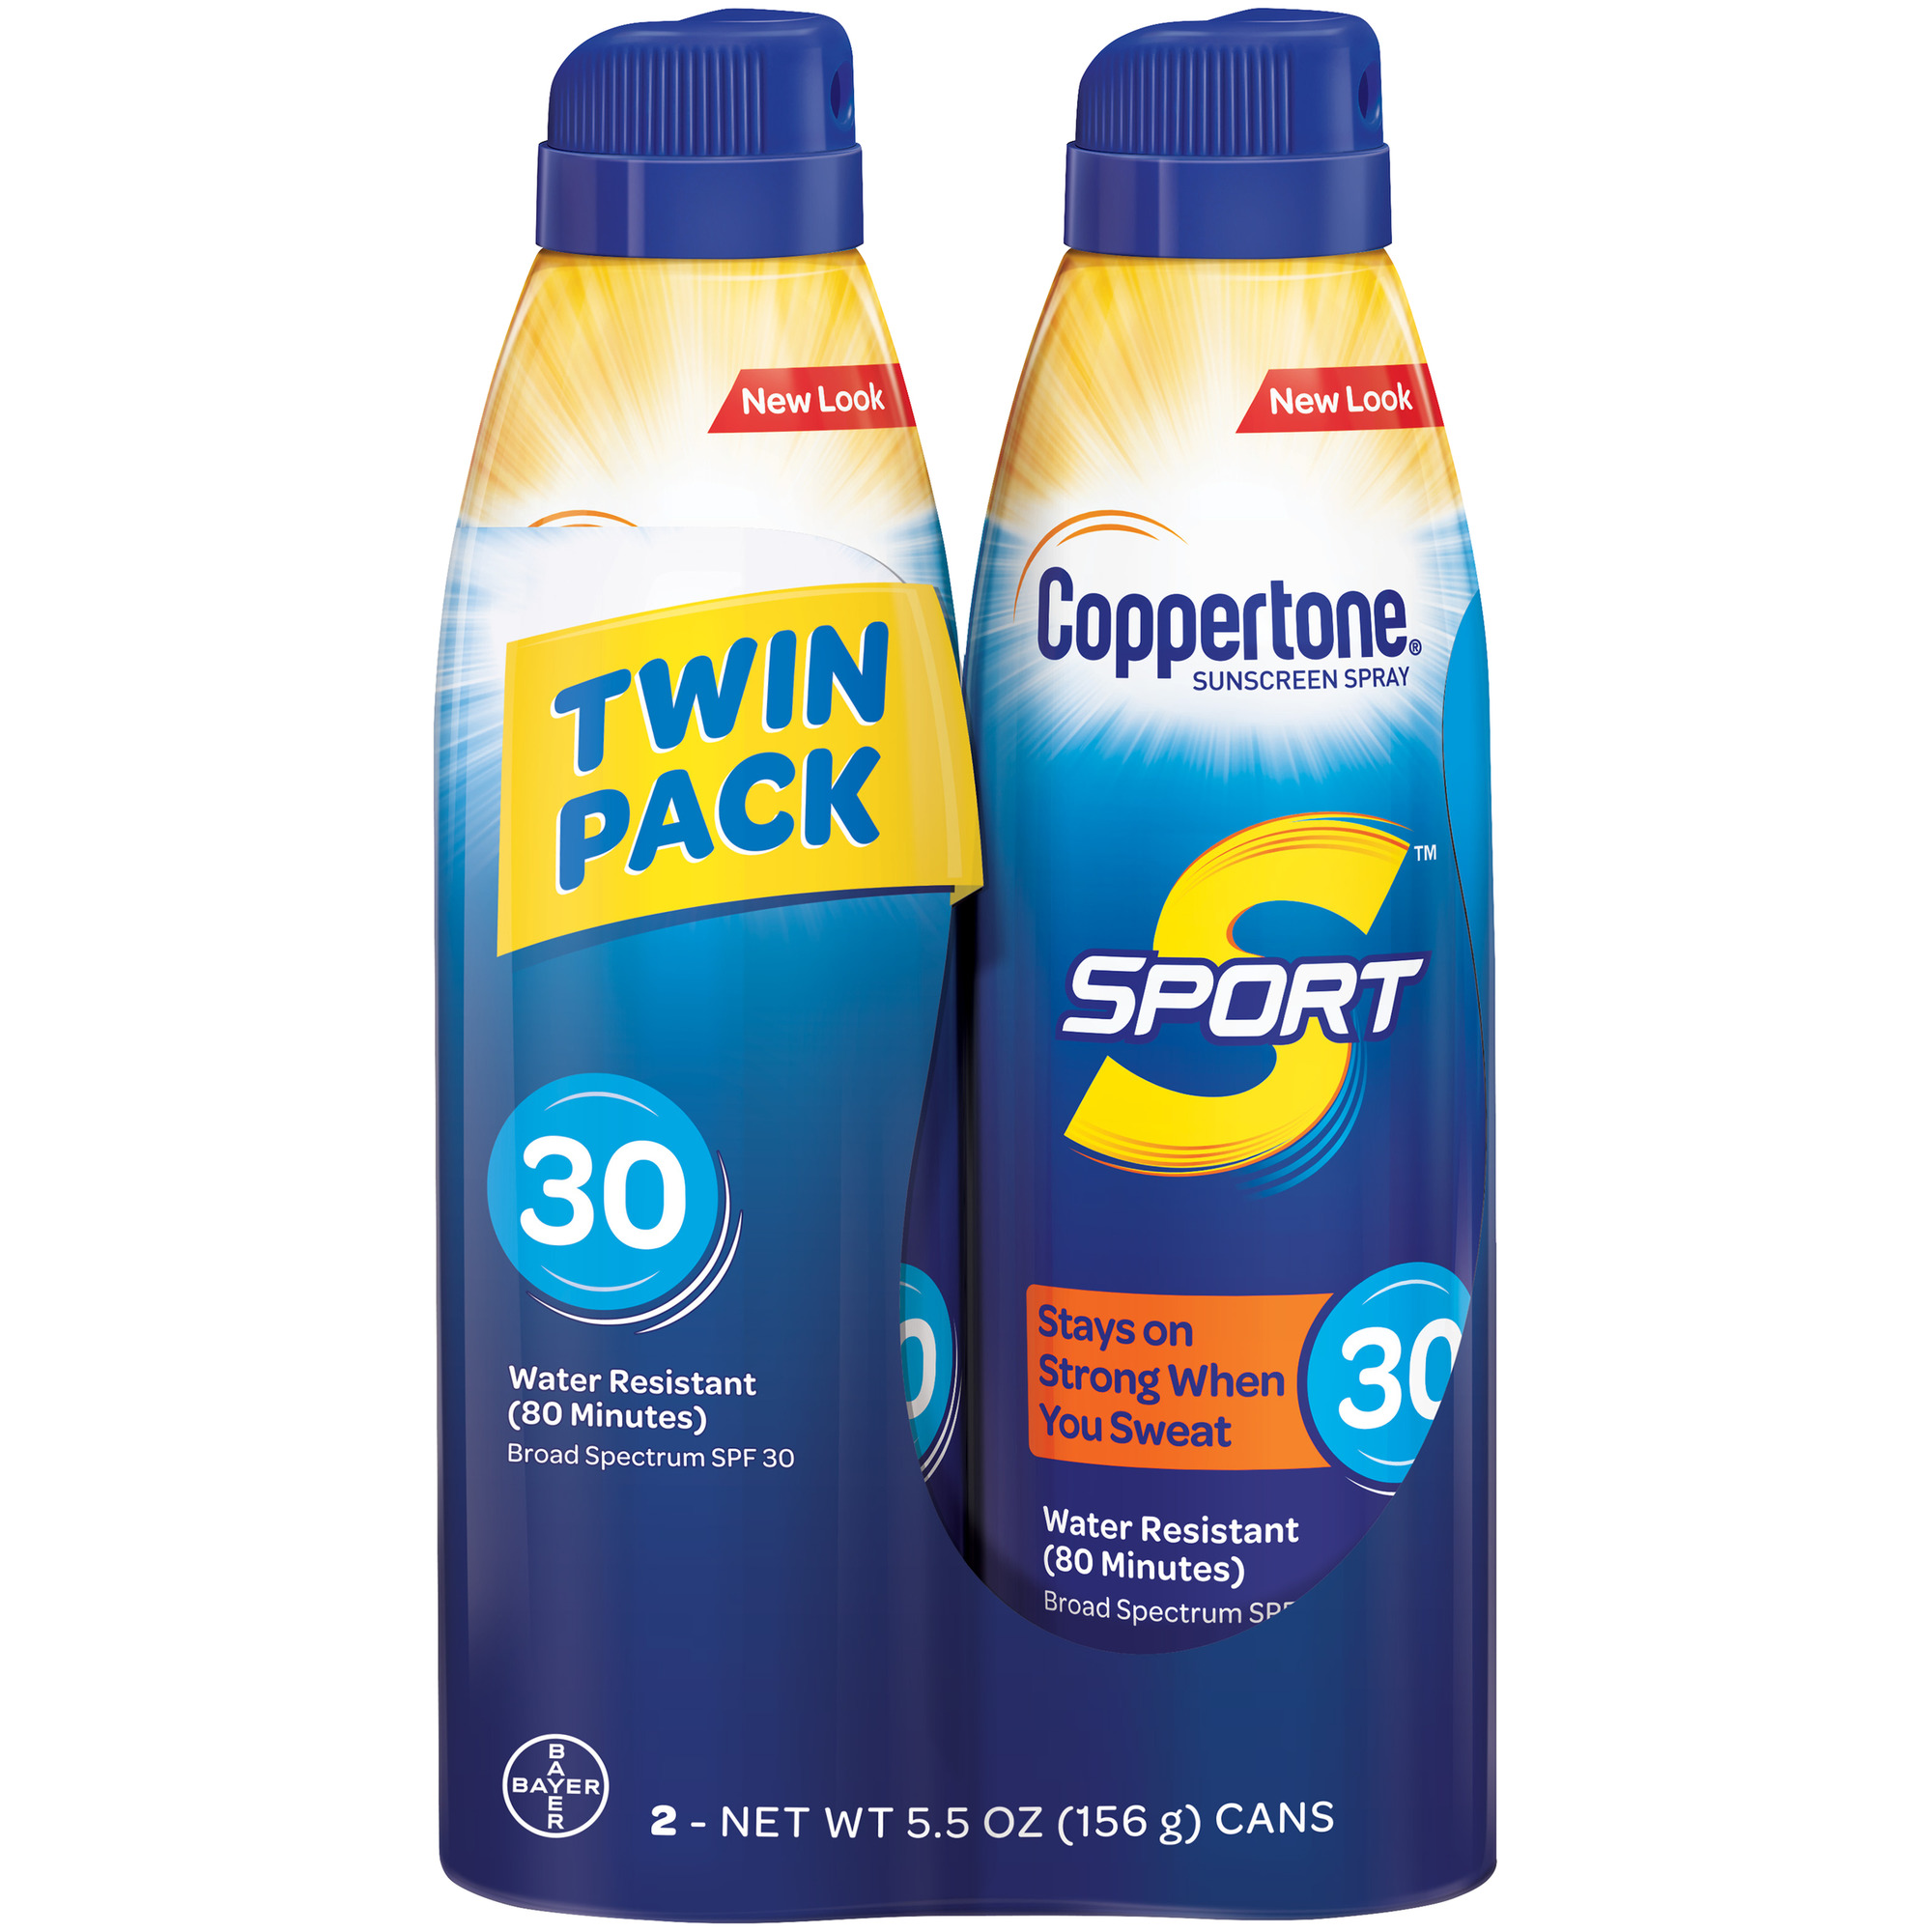 a271a4f82190 Coppertone Sport Continuous SPF 30 Spray Twin Pack, 2-5.5 oz. Cans